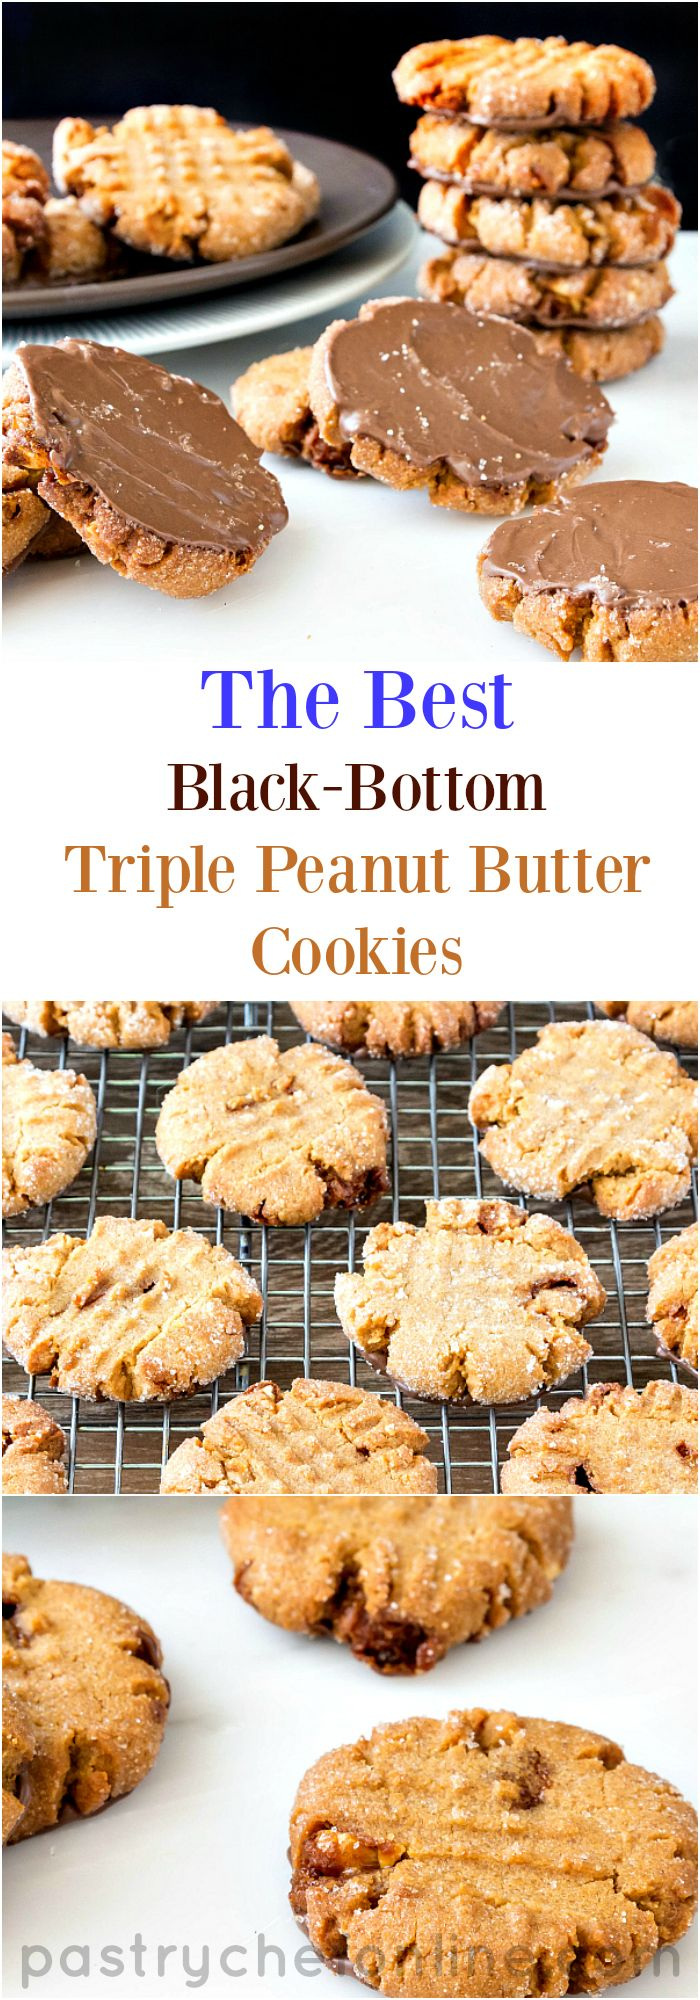 I present unto you the best black bottom triple peanut butter cookies in the world! How does this peanut butter cookie recipe end up with so much peanutty flavor? Natural peanut butter, peanut powder and chopped peanut brittle. These are seriously peanutt